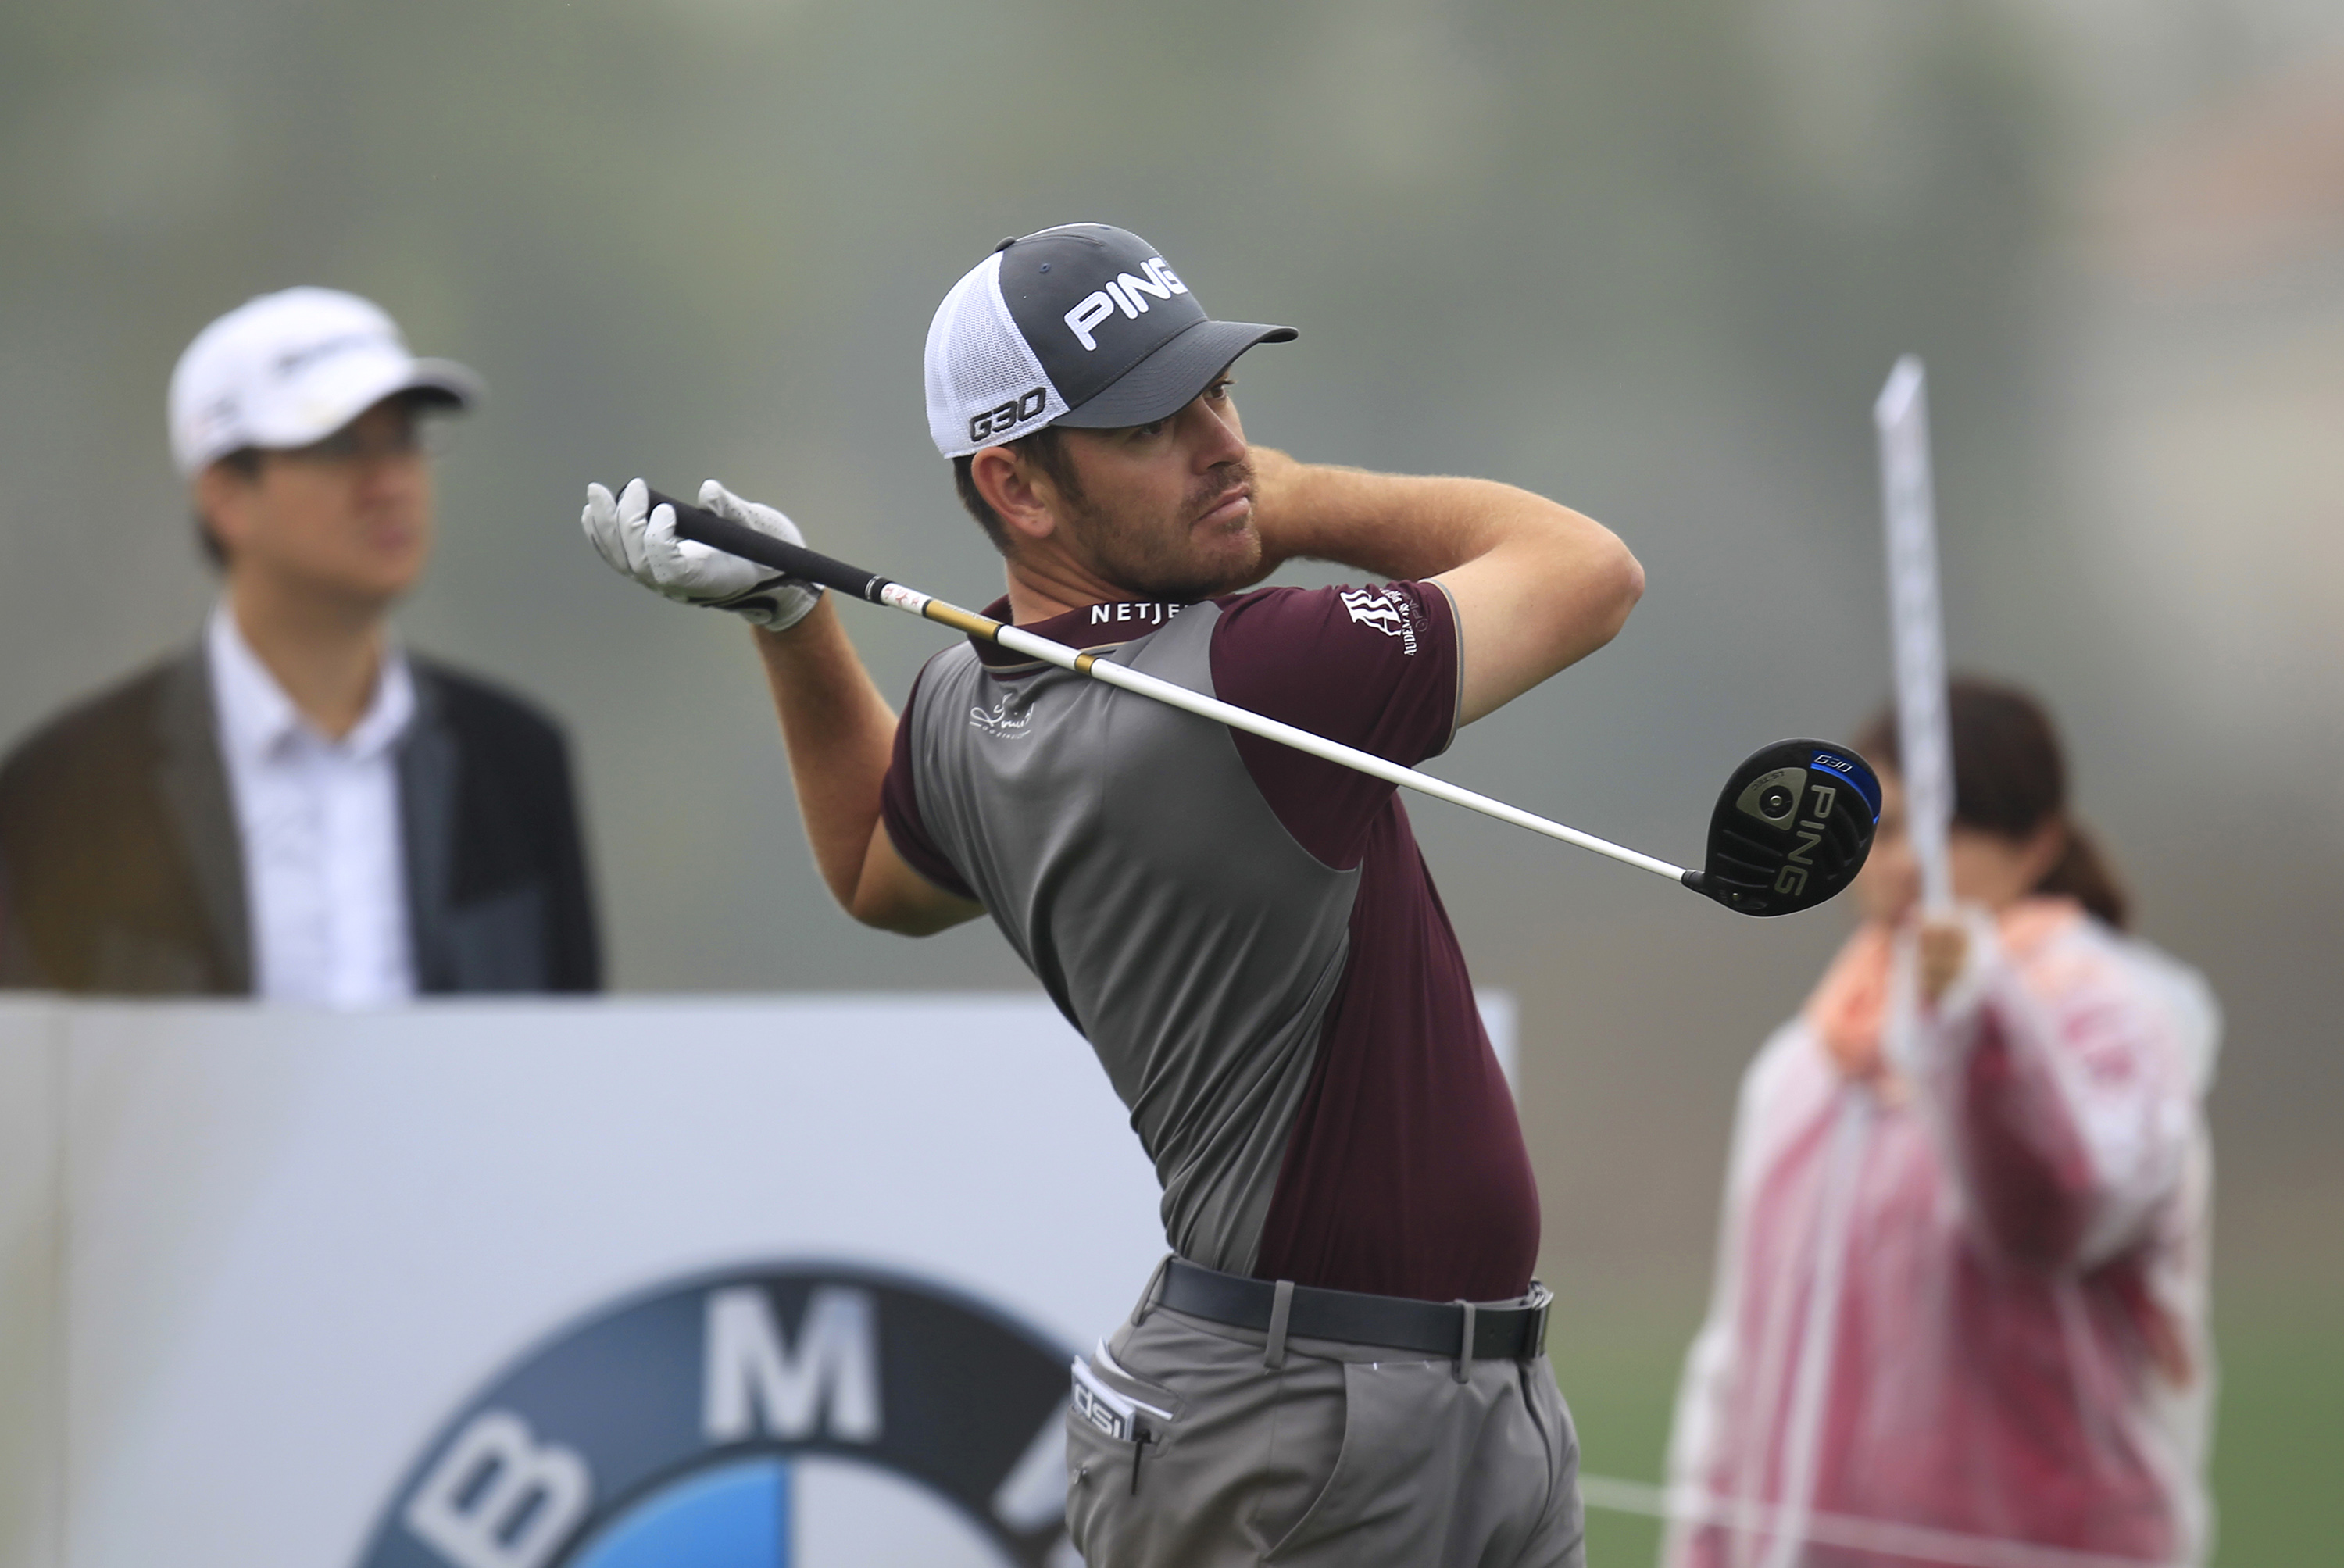 Louis Oosthuizen of South Africa tees off on the 15th hole during the first round of the BMW Masters golf tournament at the Lake Malaren Golf Club in Shanghai, China Thursday, Nov. 12, 2015. (AP Photo)